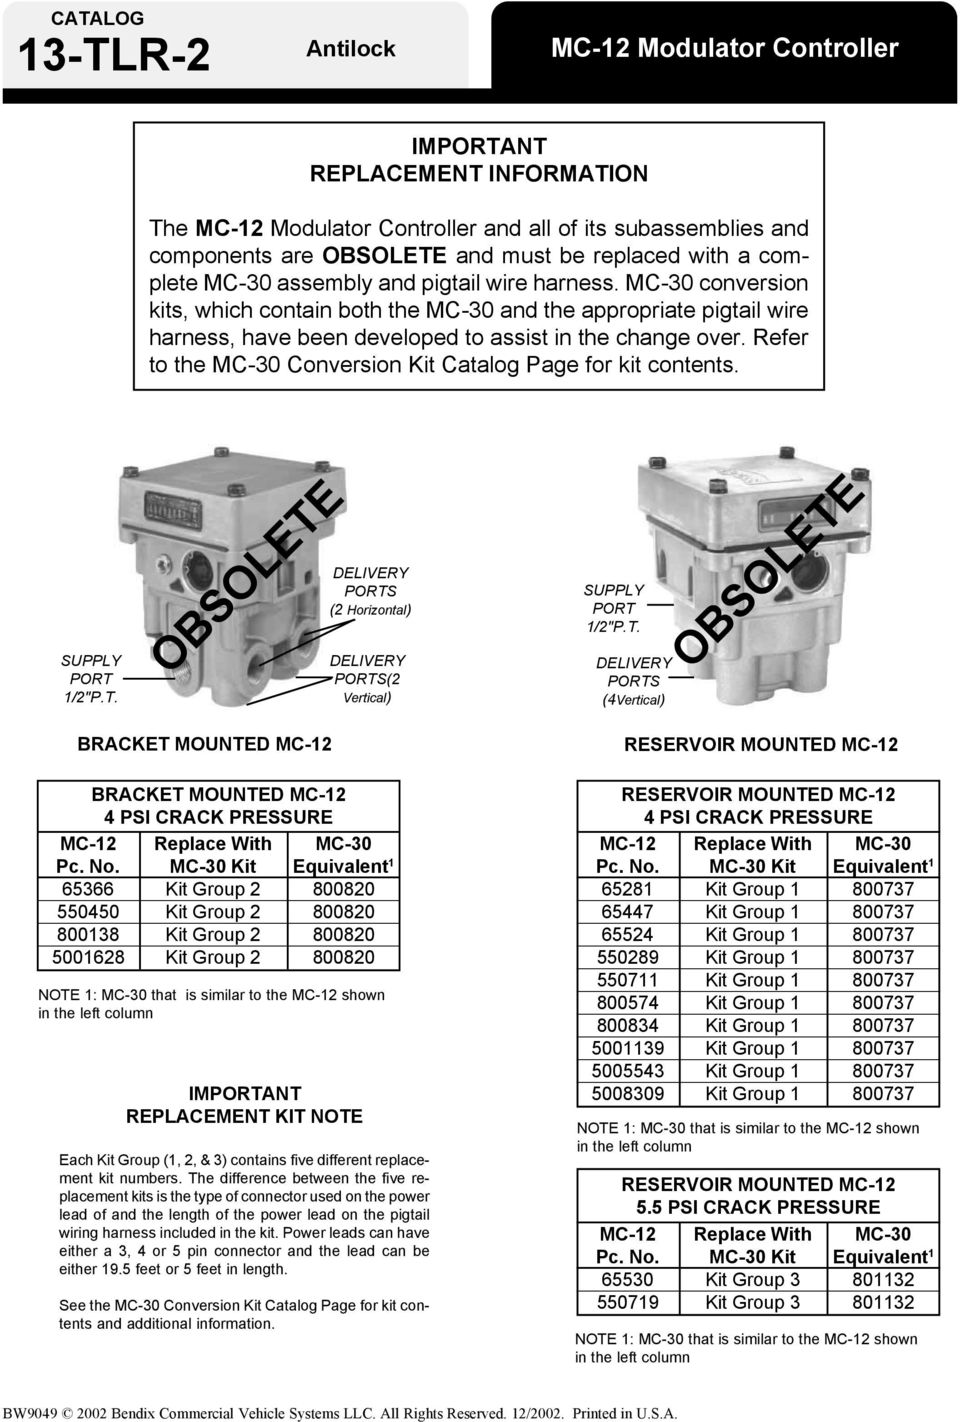 medium resolution of refer to the mc 30 conversion kit catalog page for kit contents supply port